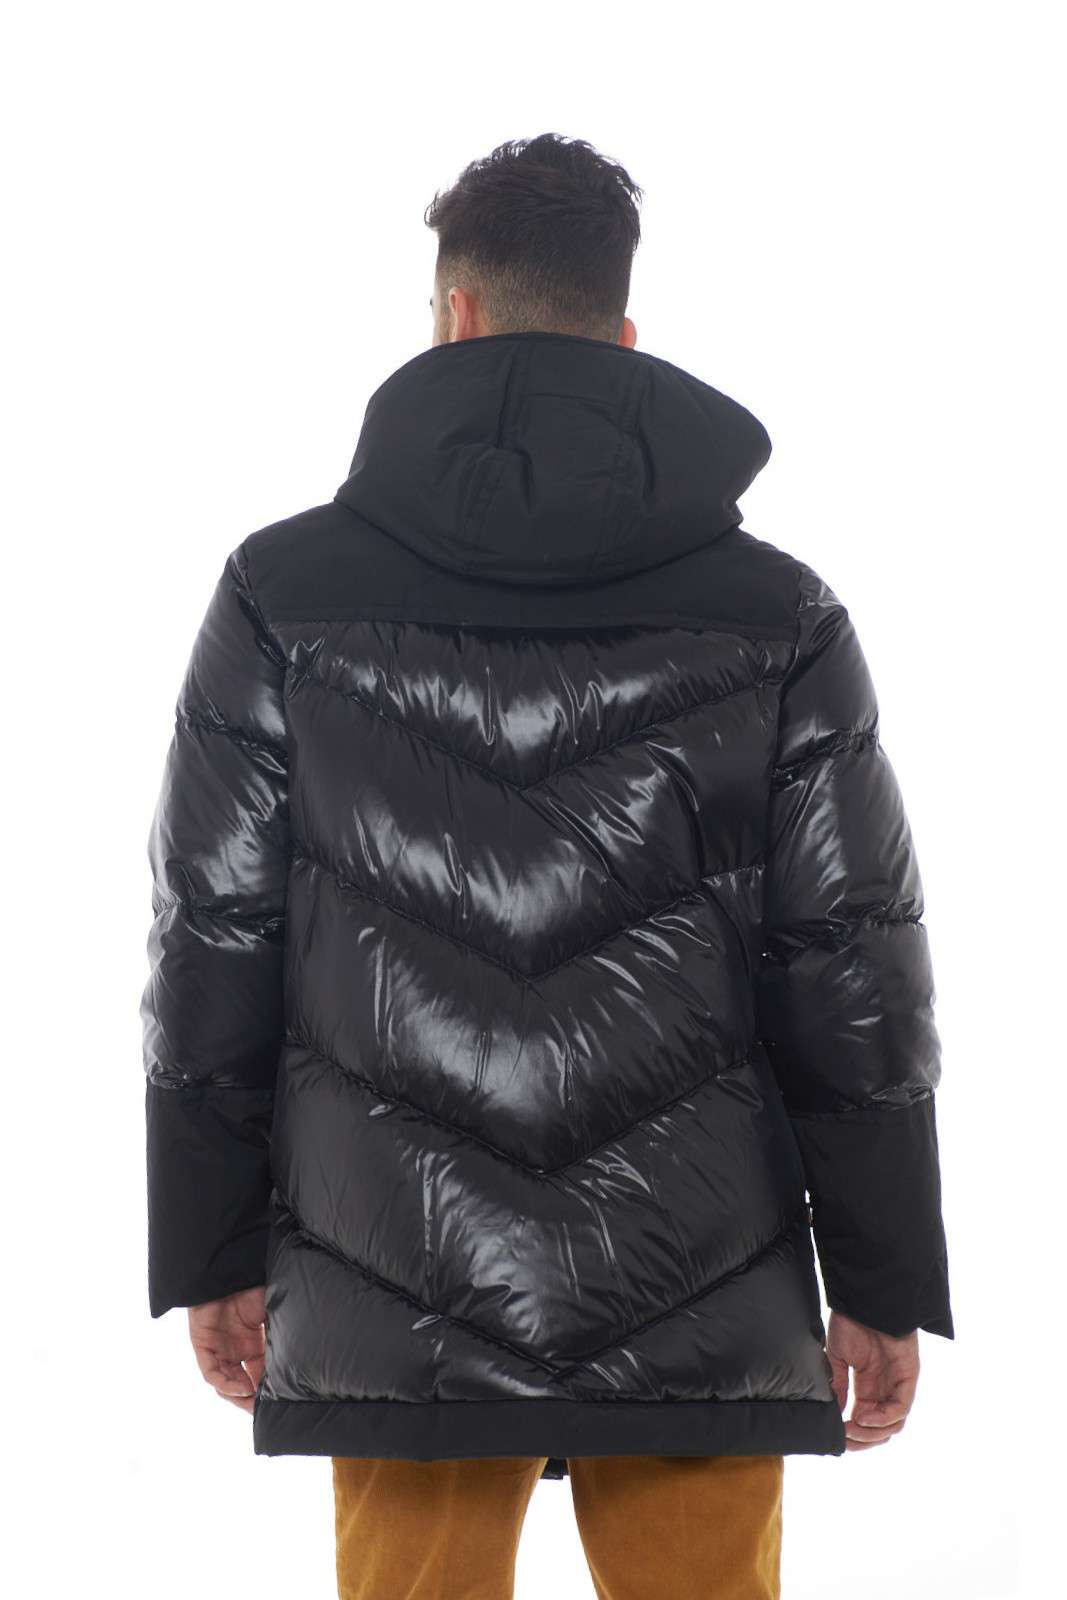 https://www.parmax.com/media/catalog/product/a/i/AI-outlet_parmax-giubbino-uomo-Woolrich-WOCPS2860-C.jpg